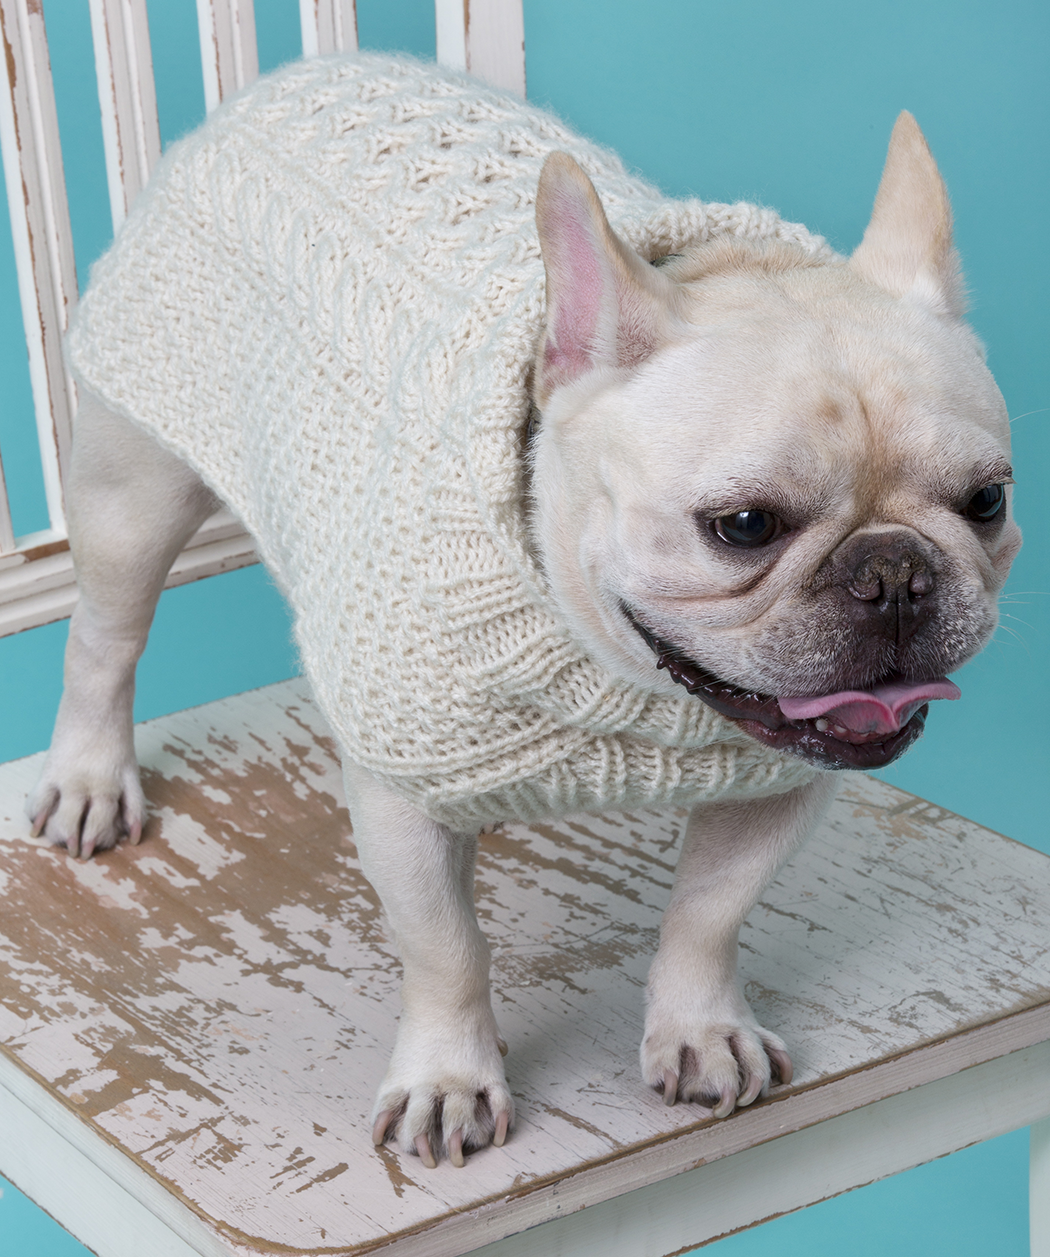 Cabled dog sweater knitting pattern knit redheartyarns new cabled dog sweater knitting pattern knit redheartyarns bankloansurffo Gallery